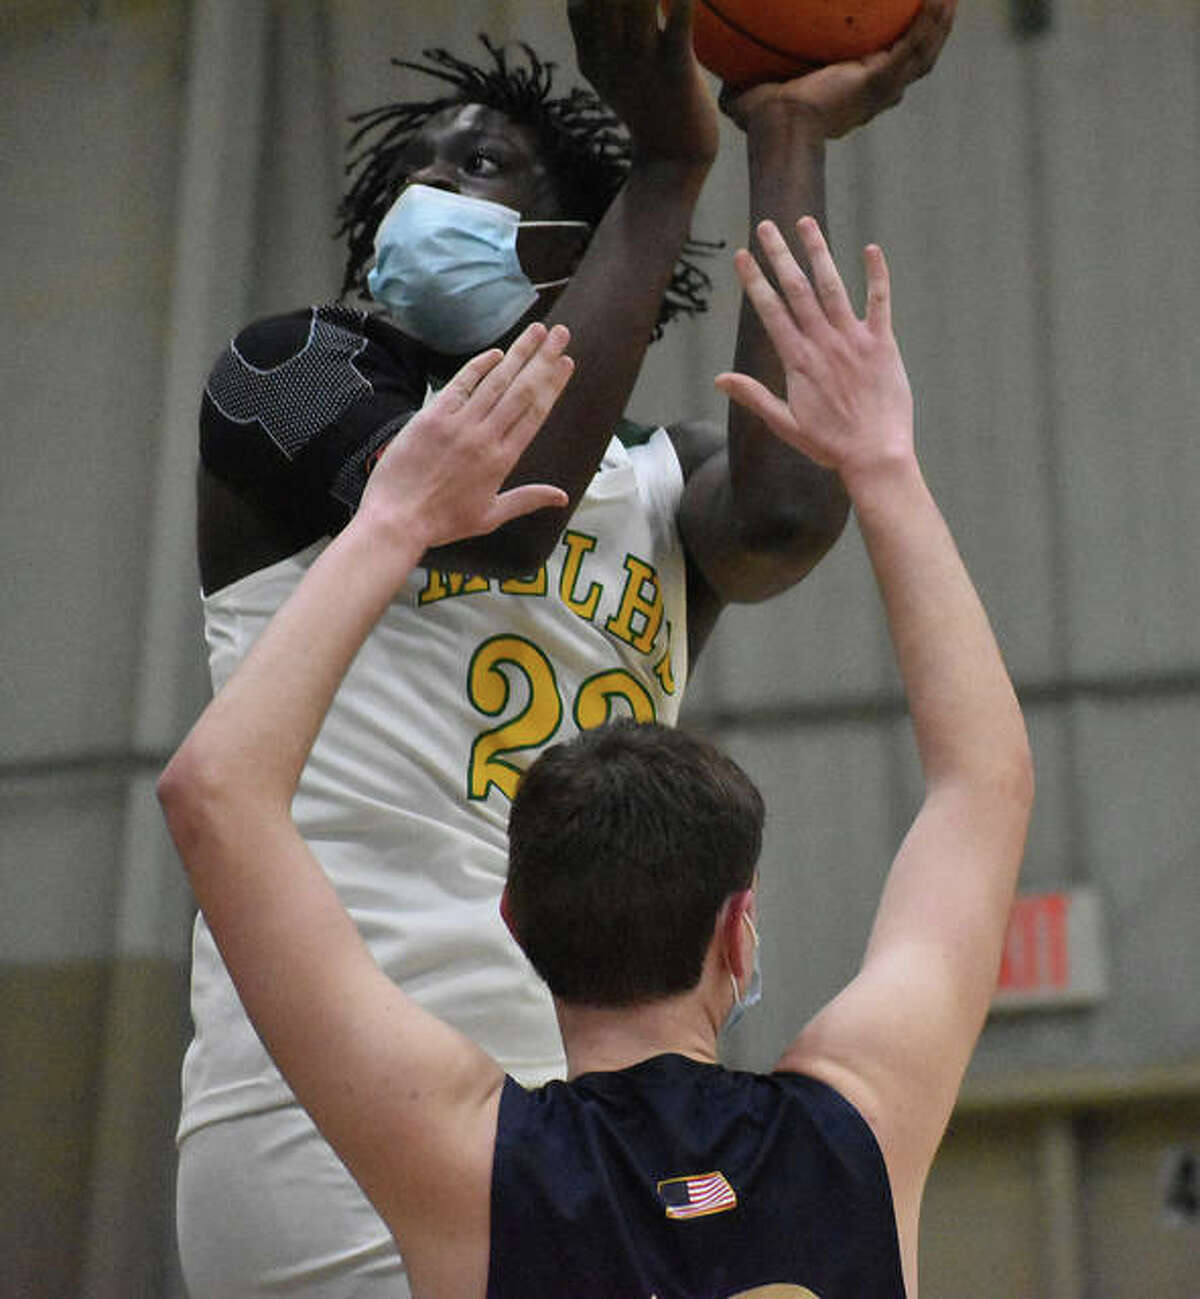 Metro-East Lutheran's DaMarcus Bean puts up a contested shot in the lane against Father McGivney.